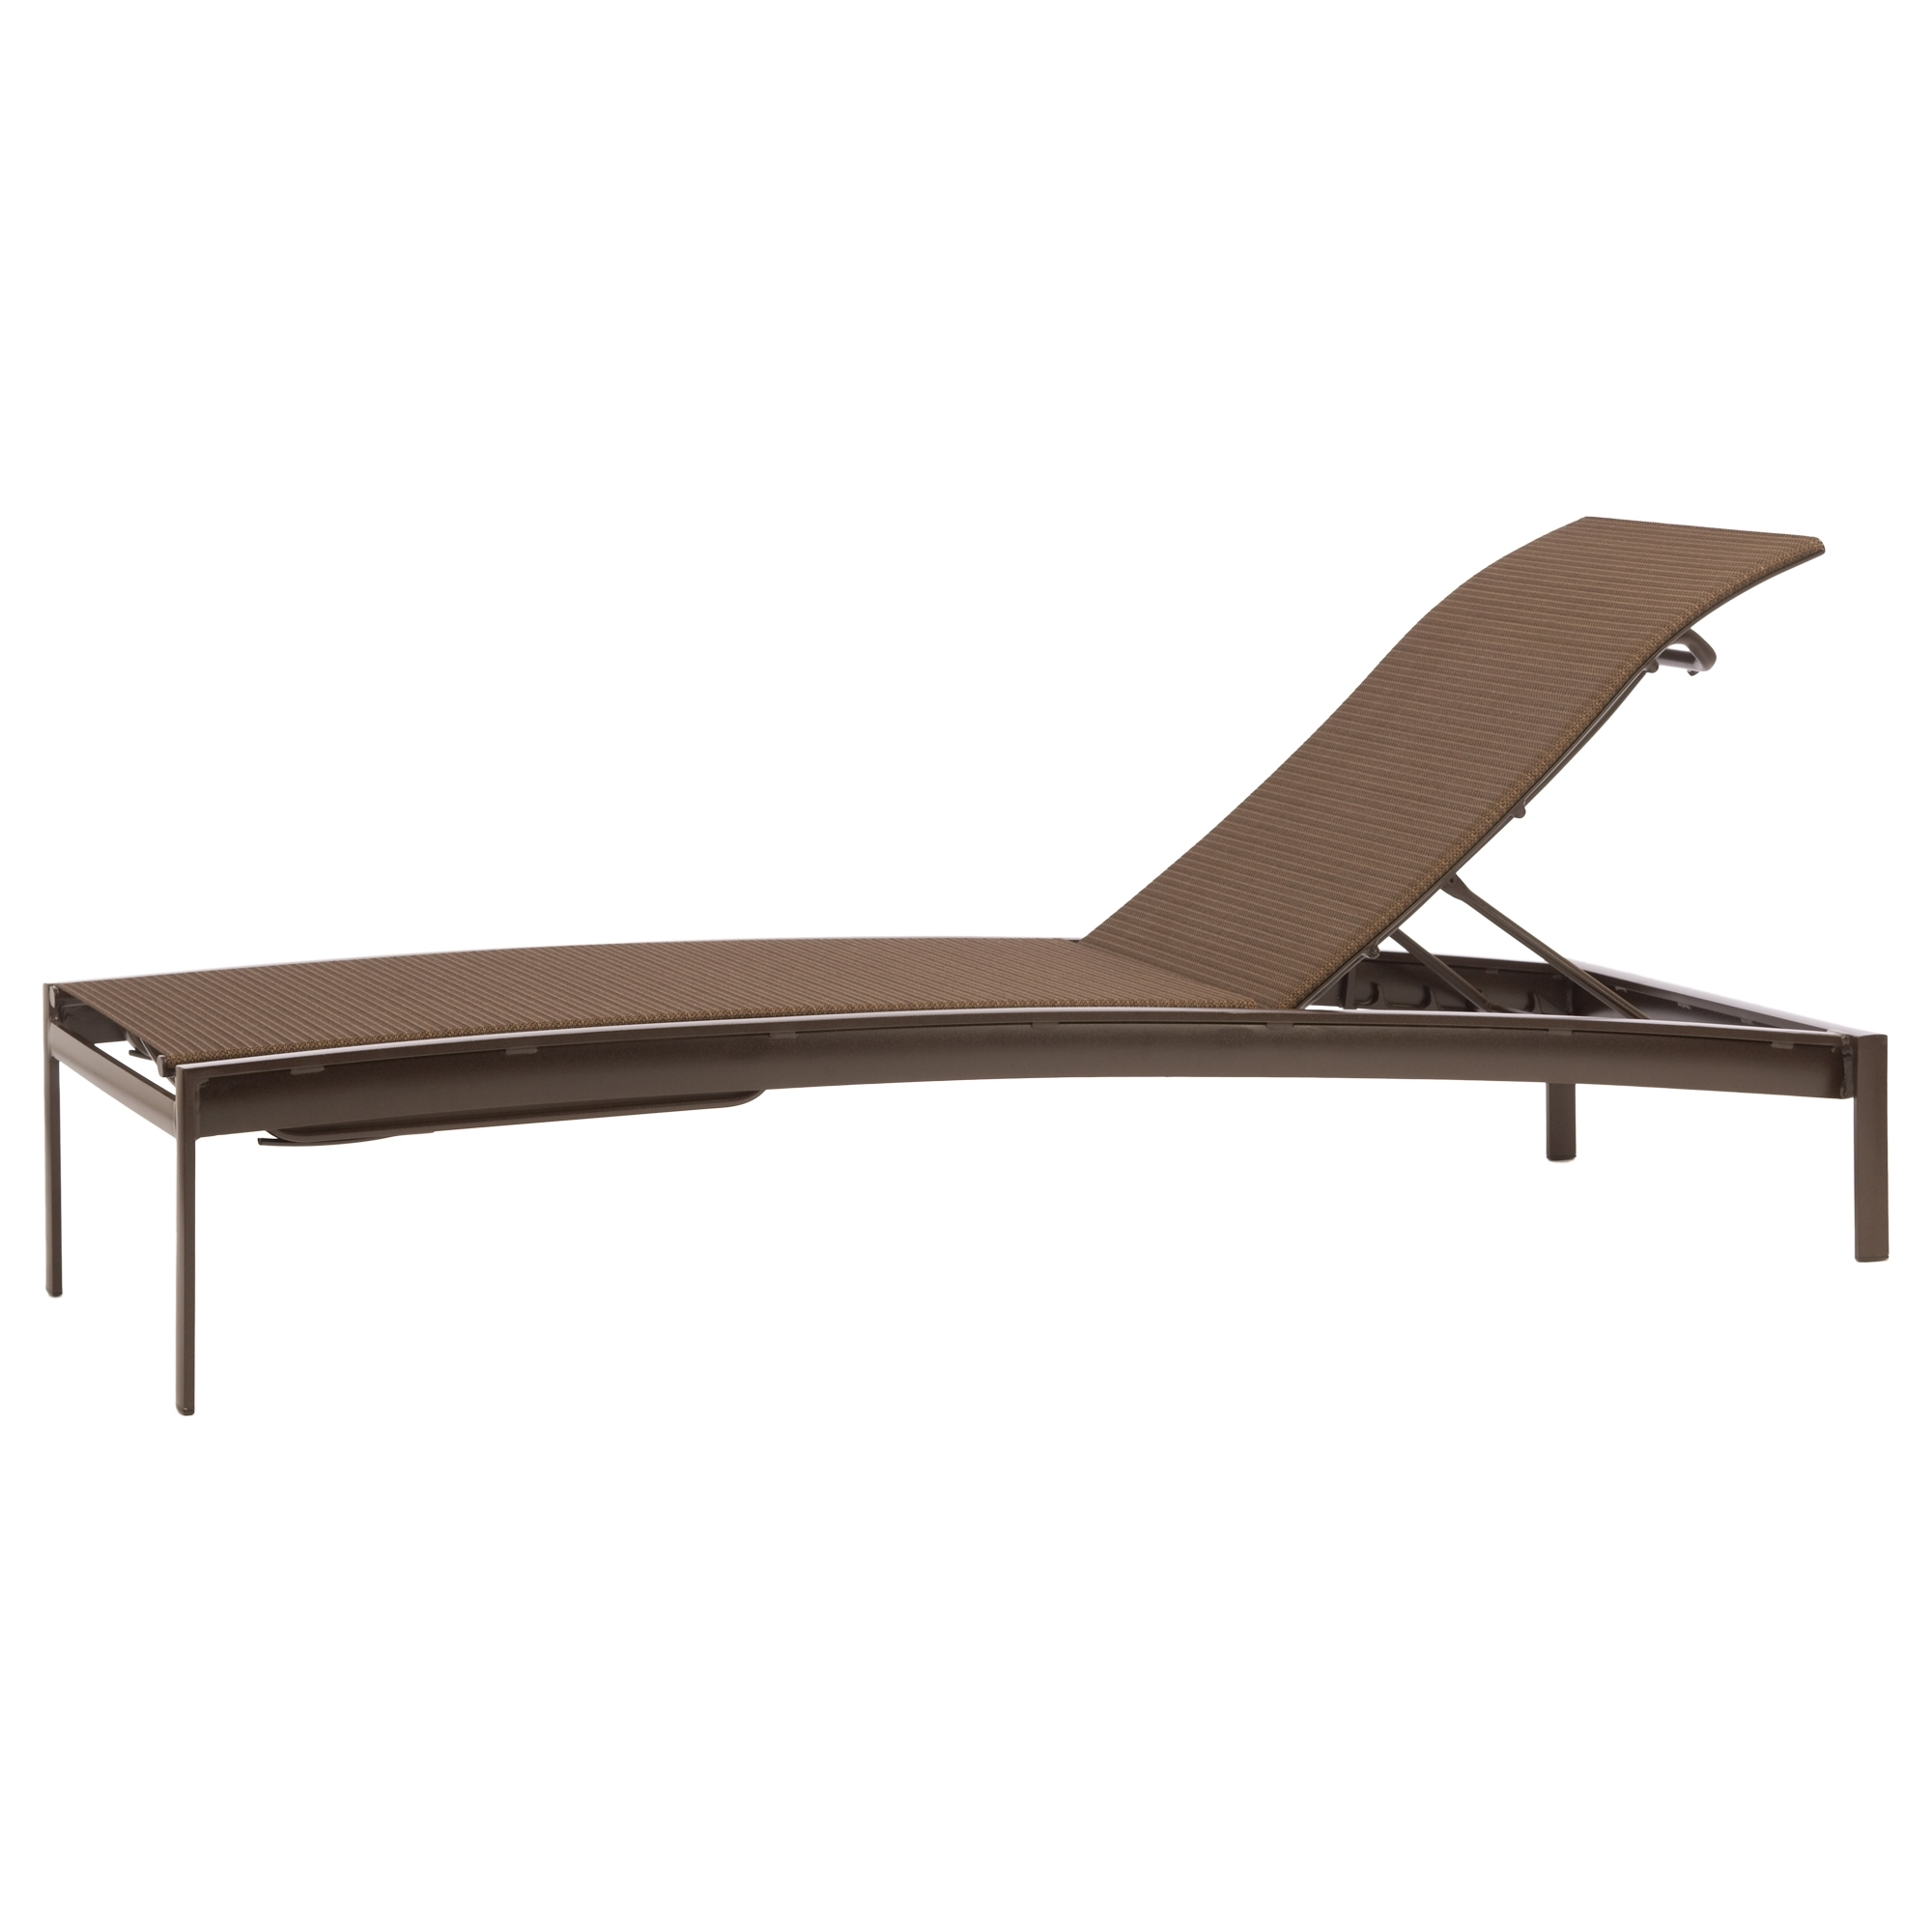 Best And Newest Brown Jordan Contract Pertaining To Brown Jordan Chaise Lounge Chairs (View 2 of 15)